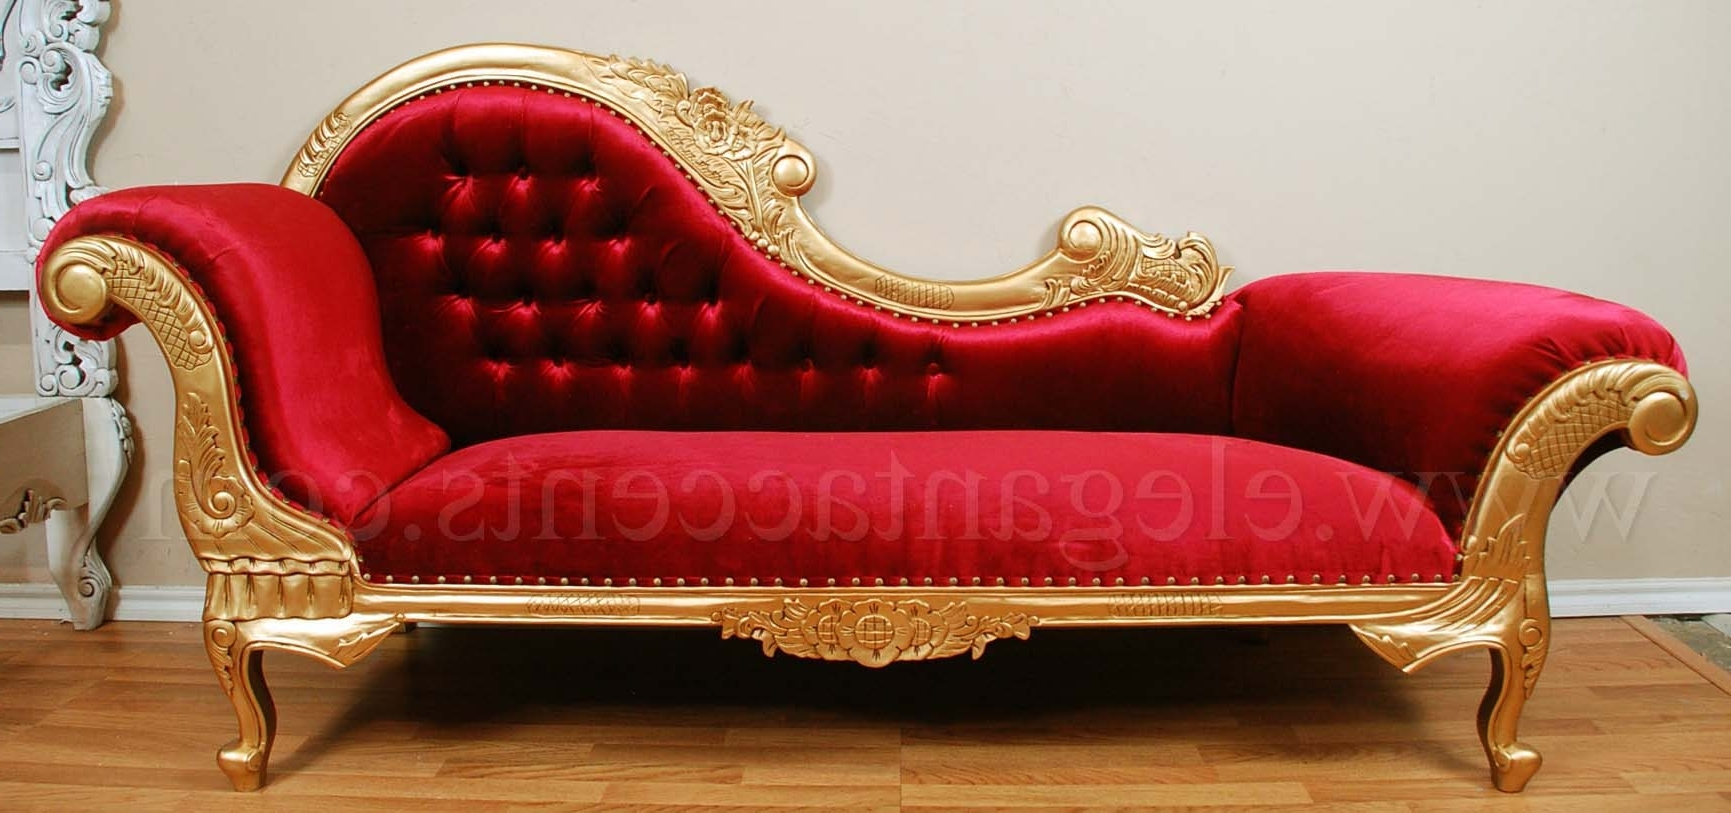 Depositphotos Stock Photo Red Chaise Lounge Over White – Surripui Regarding Widely Used Red Chaises (View 3 of 15)